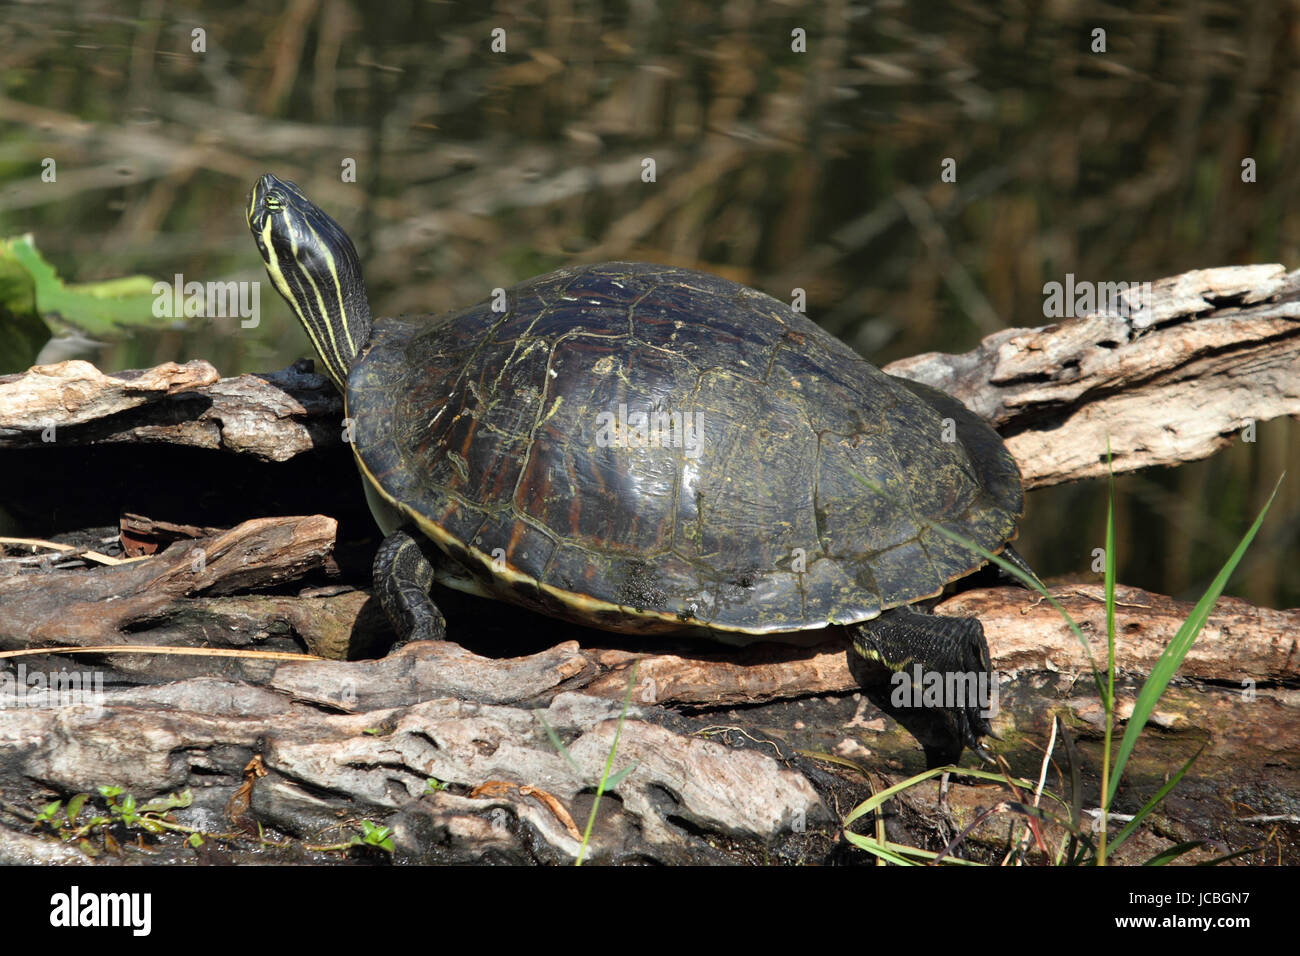 Florida Red-bellied Cooter (Pseudemys Chrysemys nelsoni) in the Florida Everglades Stock Photo